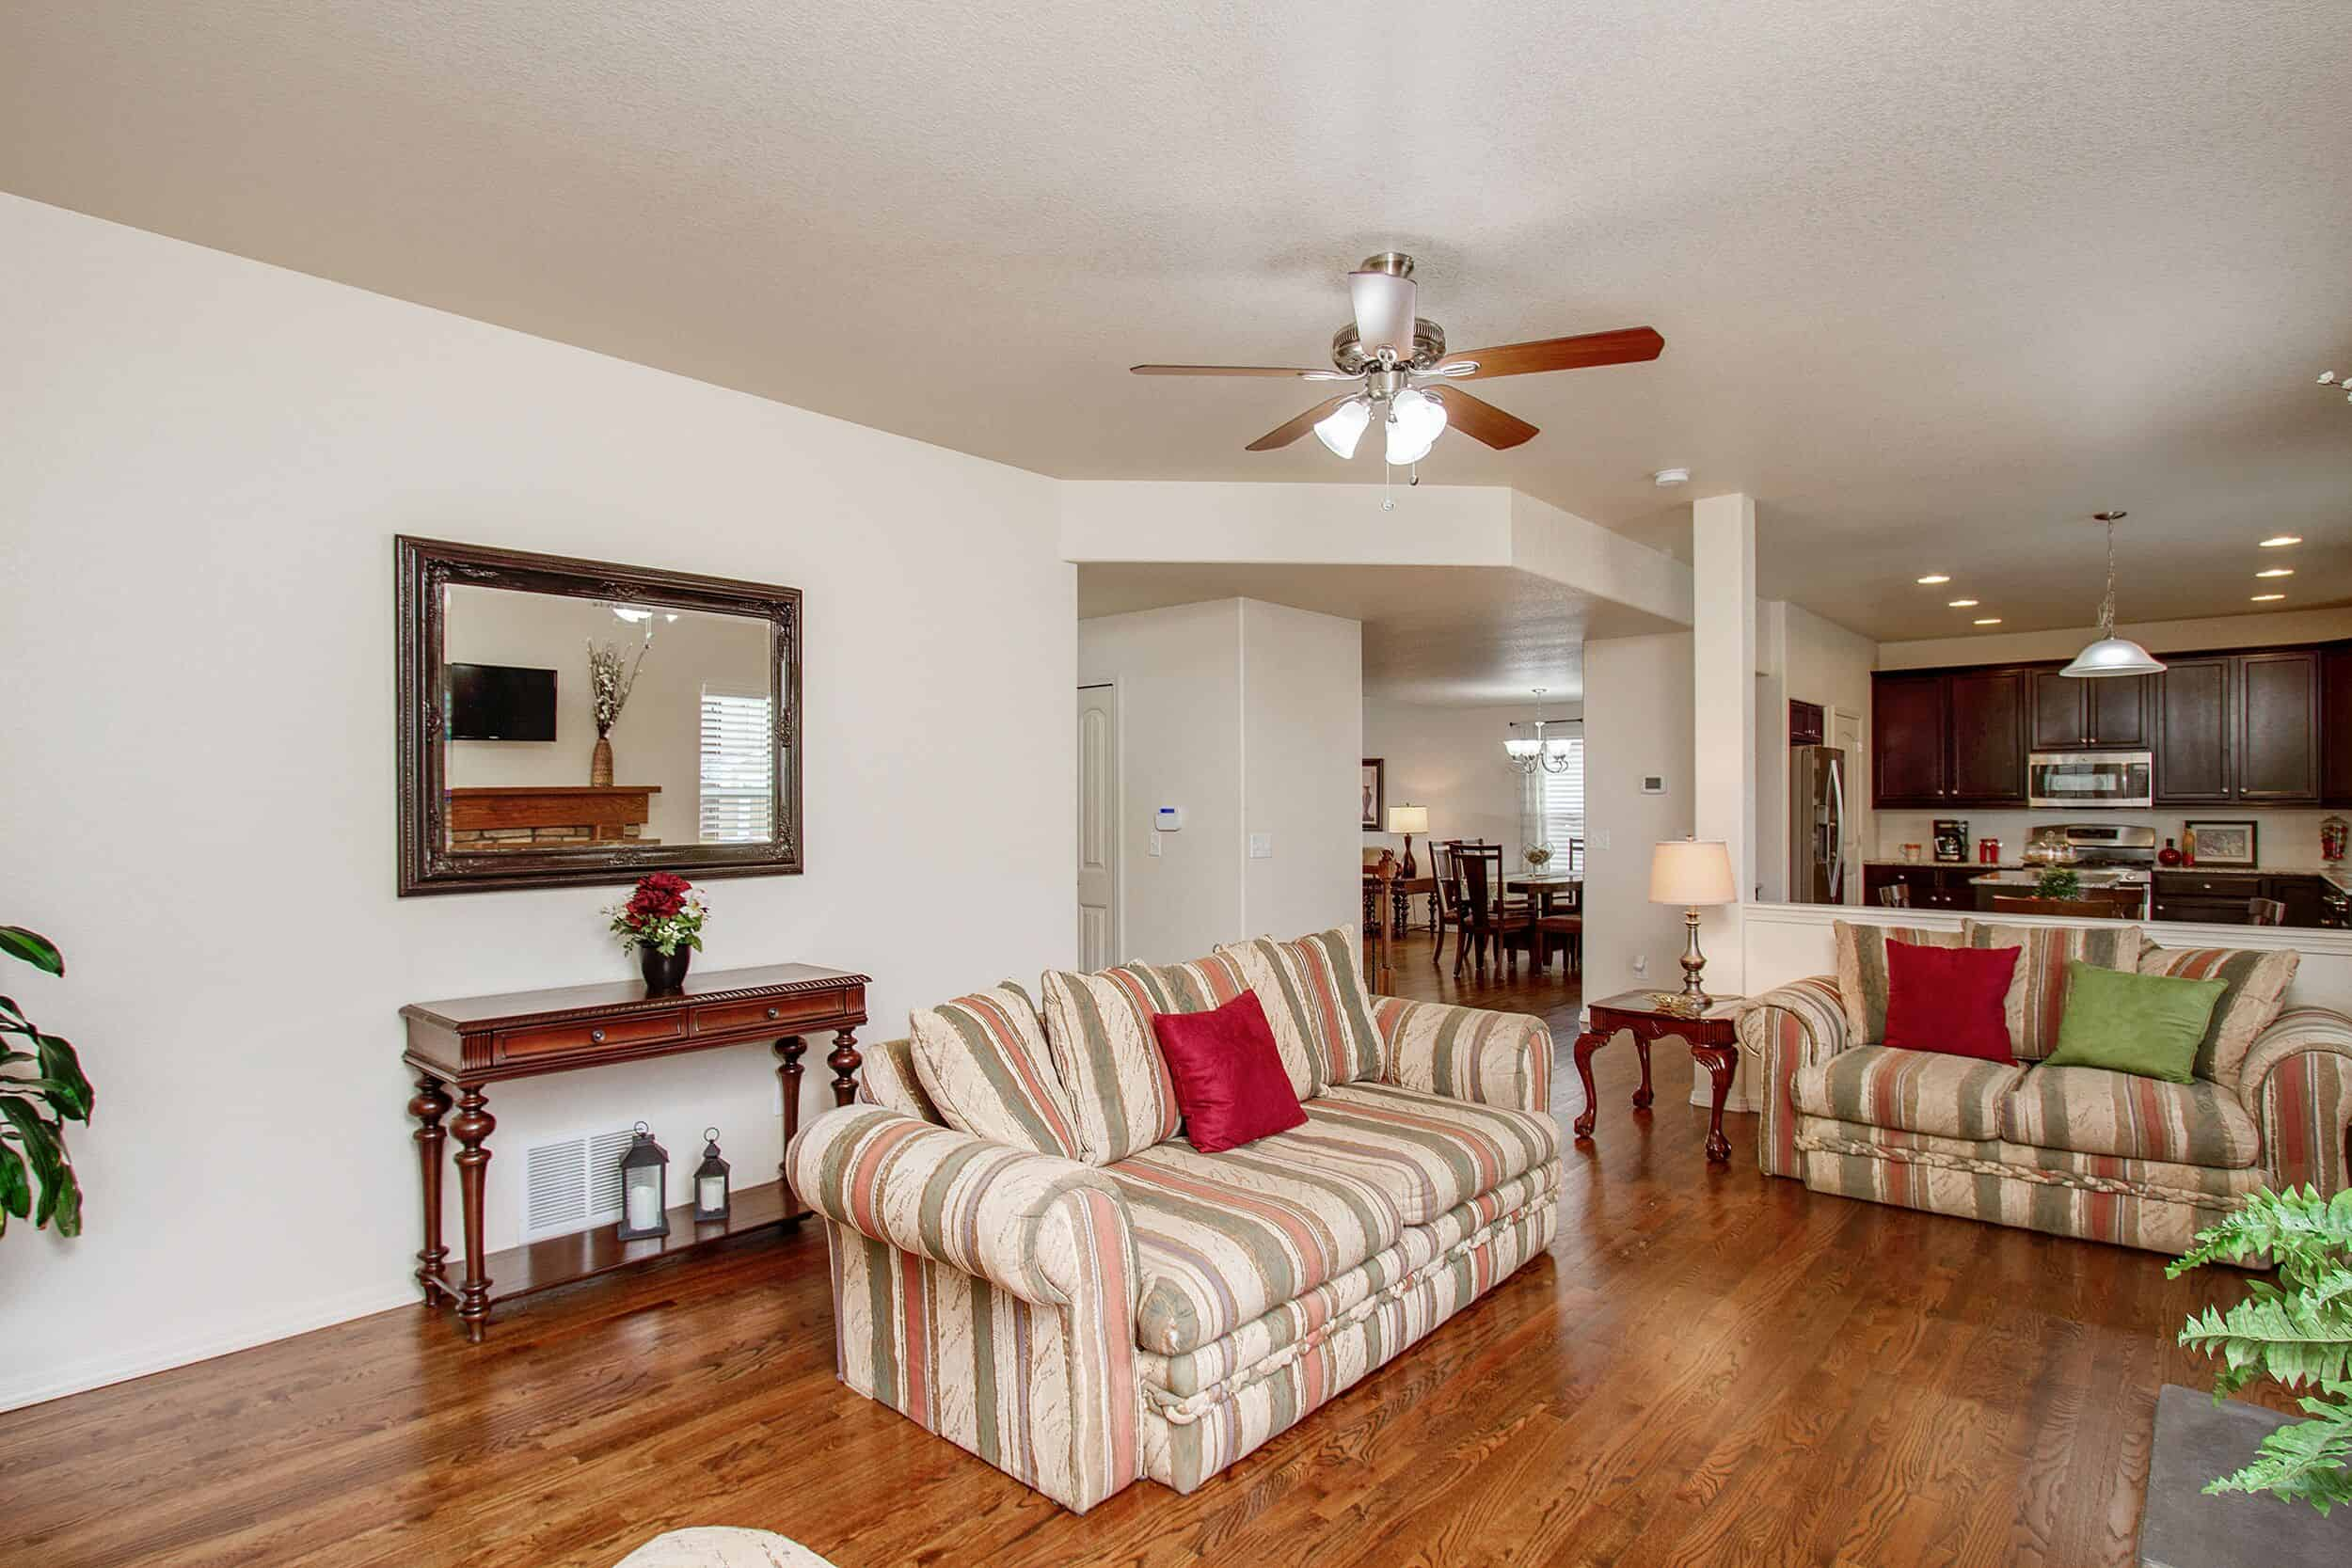 Family Room, Dining Room, Kitchen